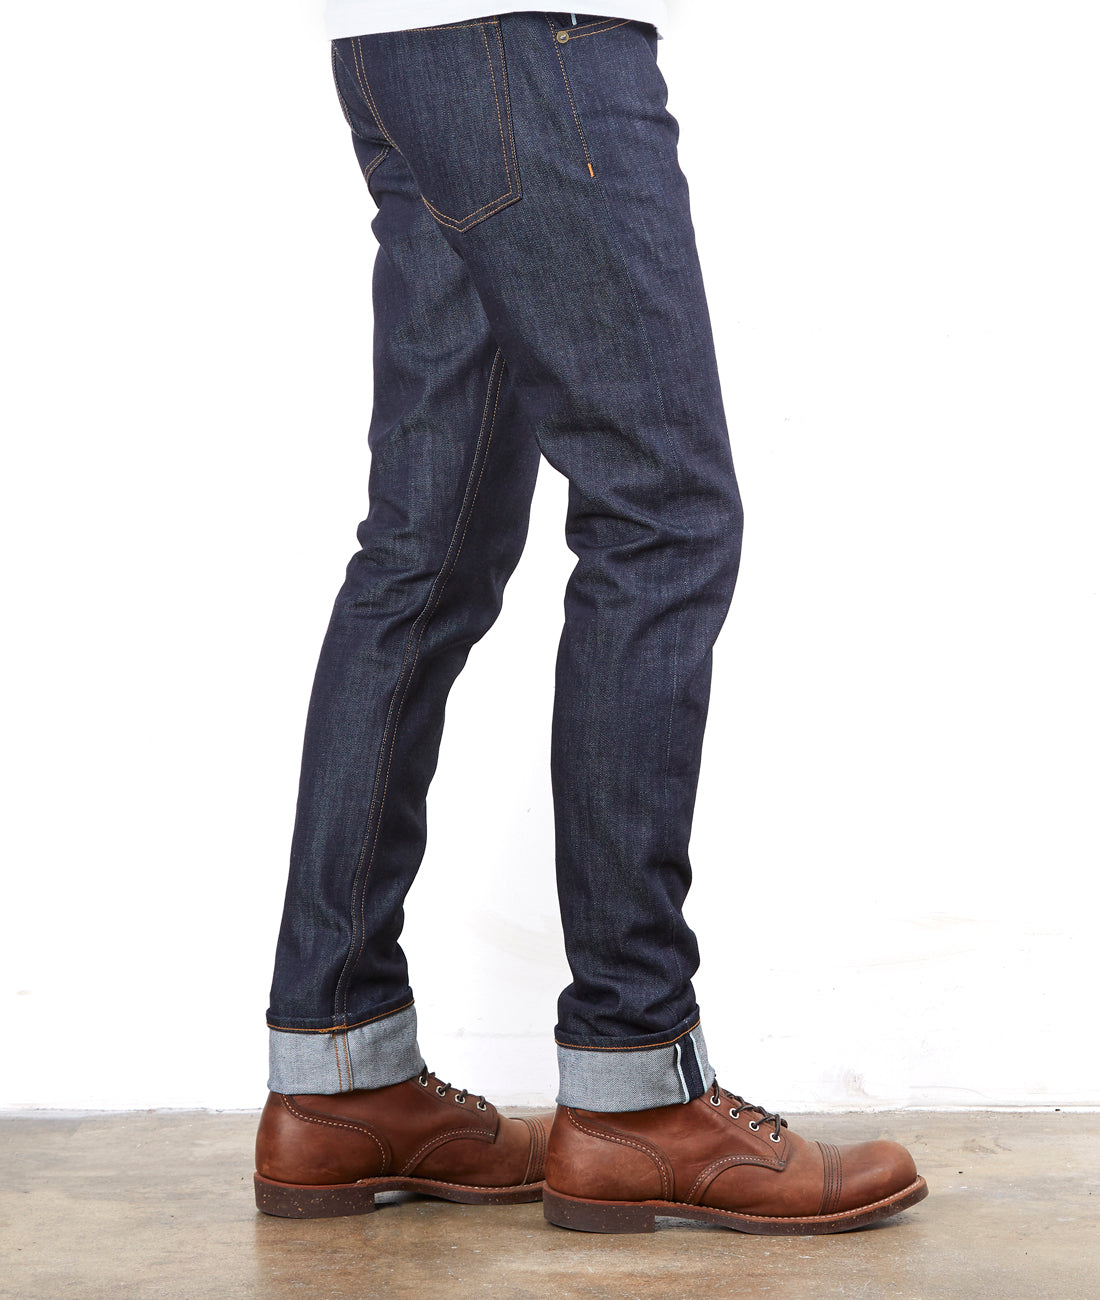 The Slim Taper 12oz 'Woodsman' Cone Mills Selvage Denim